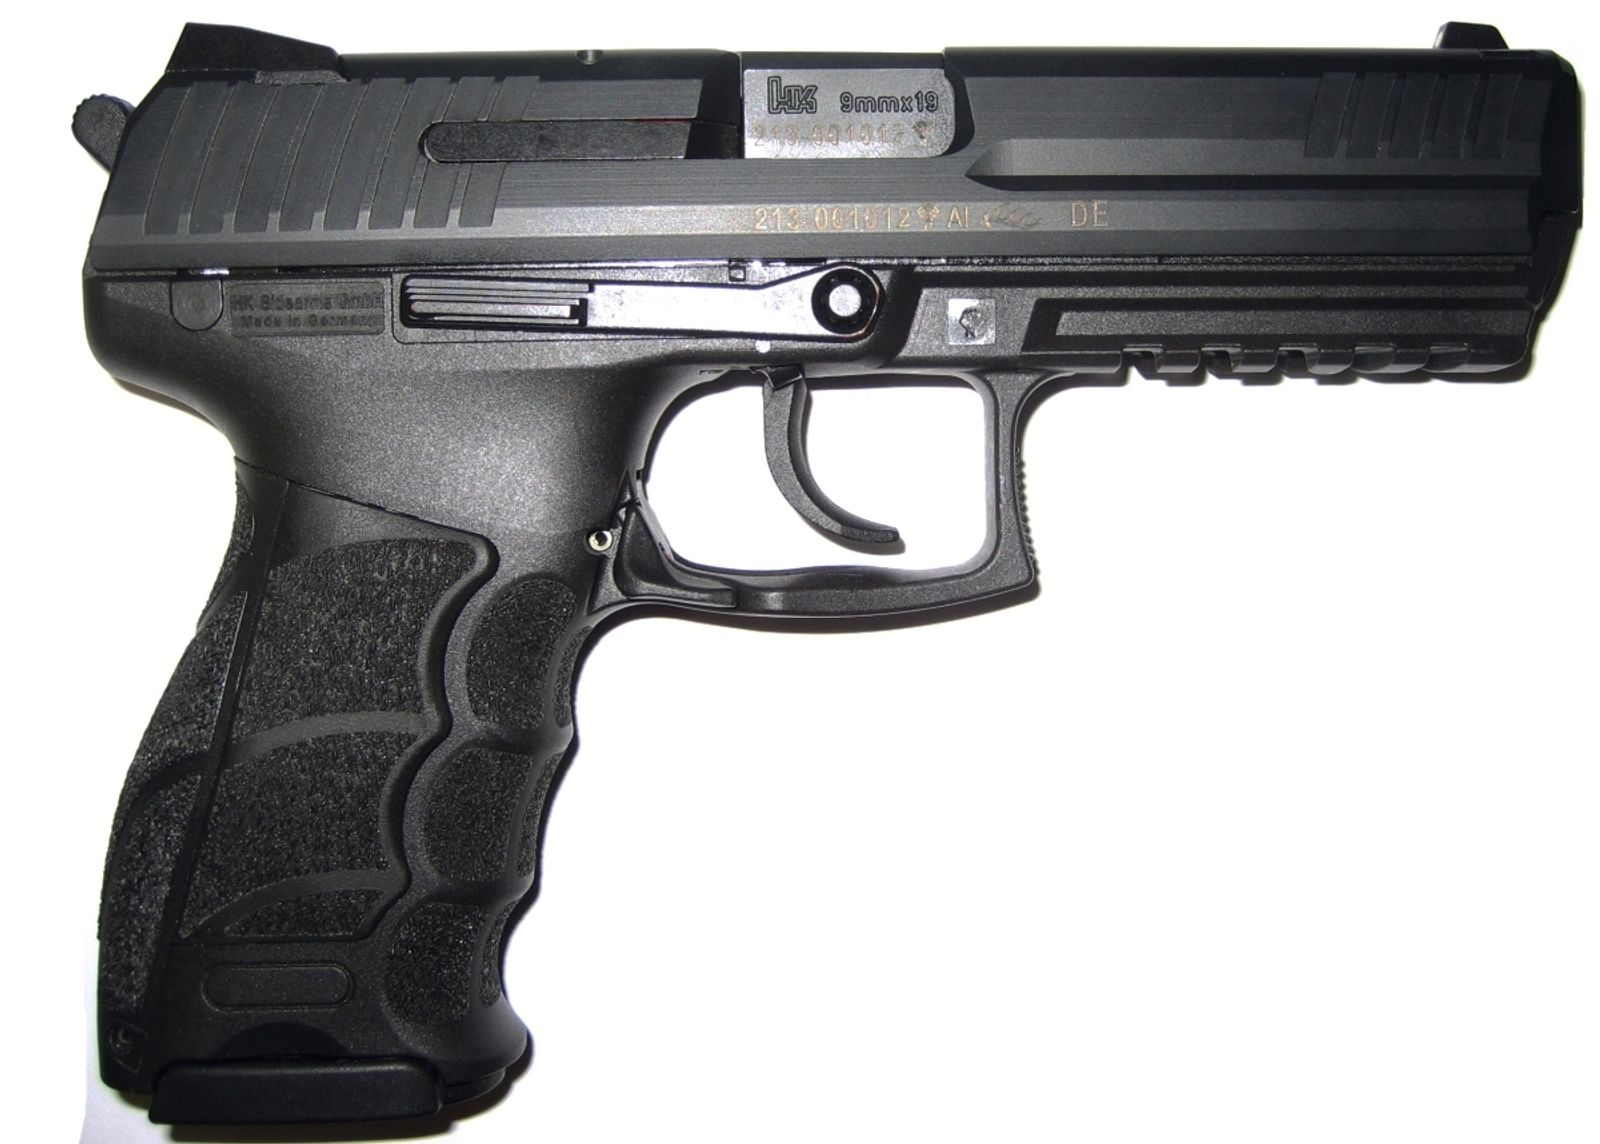 The Heckler and Koch P30 Gun: A Pistol That Should Be Feared?